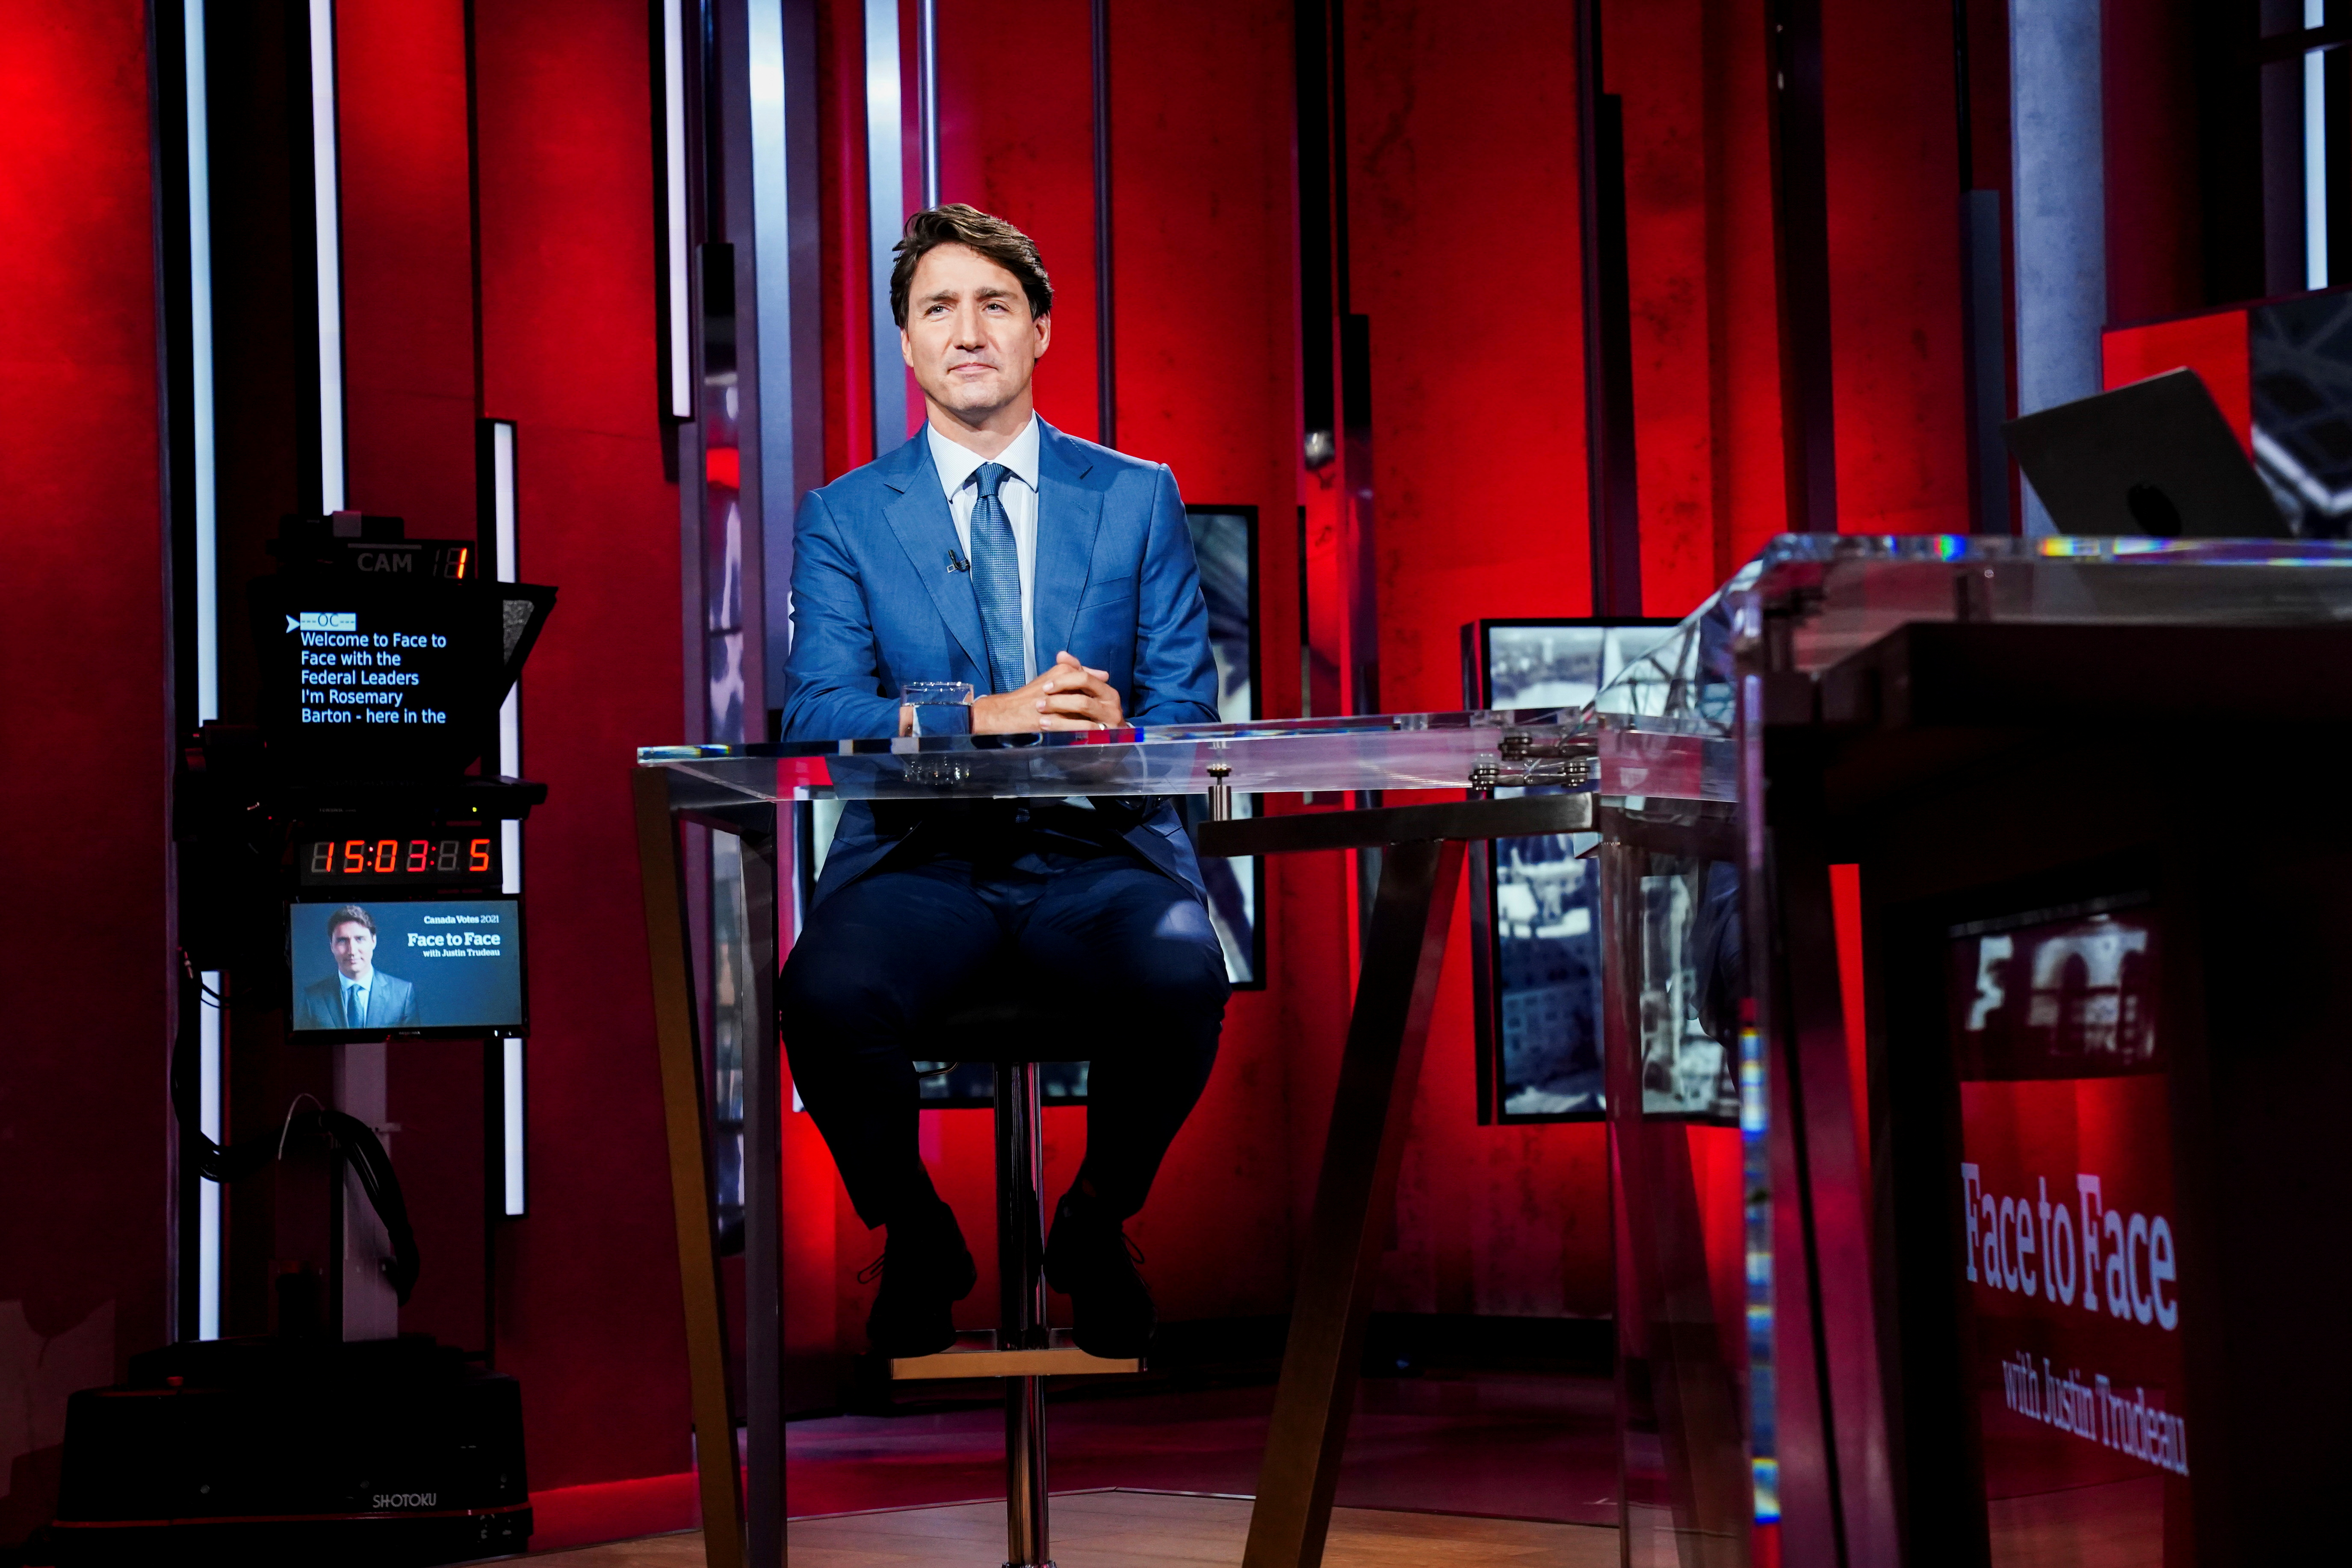 Liberal Leader Justin Trudeau prepares to take part on CBC's Face To Face with host Rosemary Barton in Toronto, Canada, September 12, 2021. Sean Kilpatrick/Pool via REUTERS